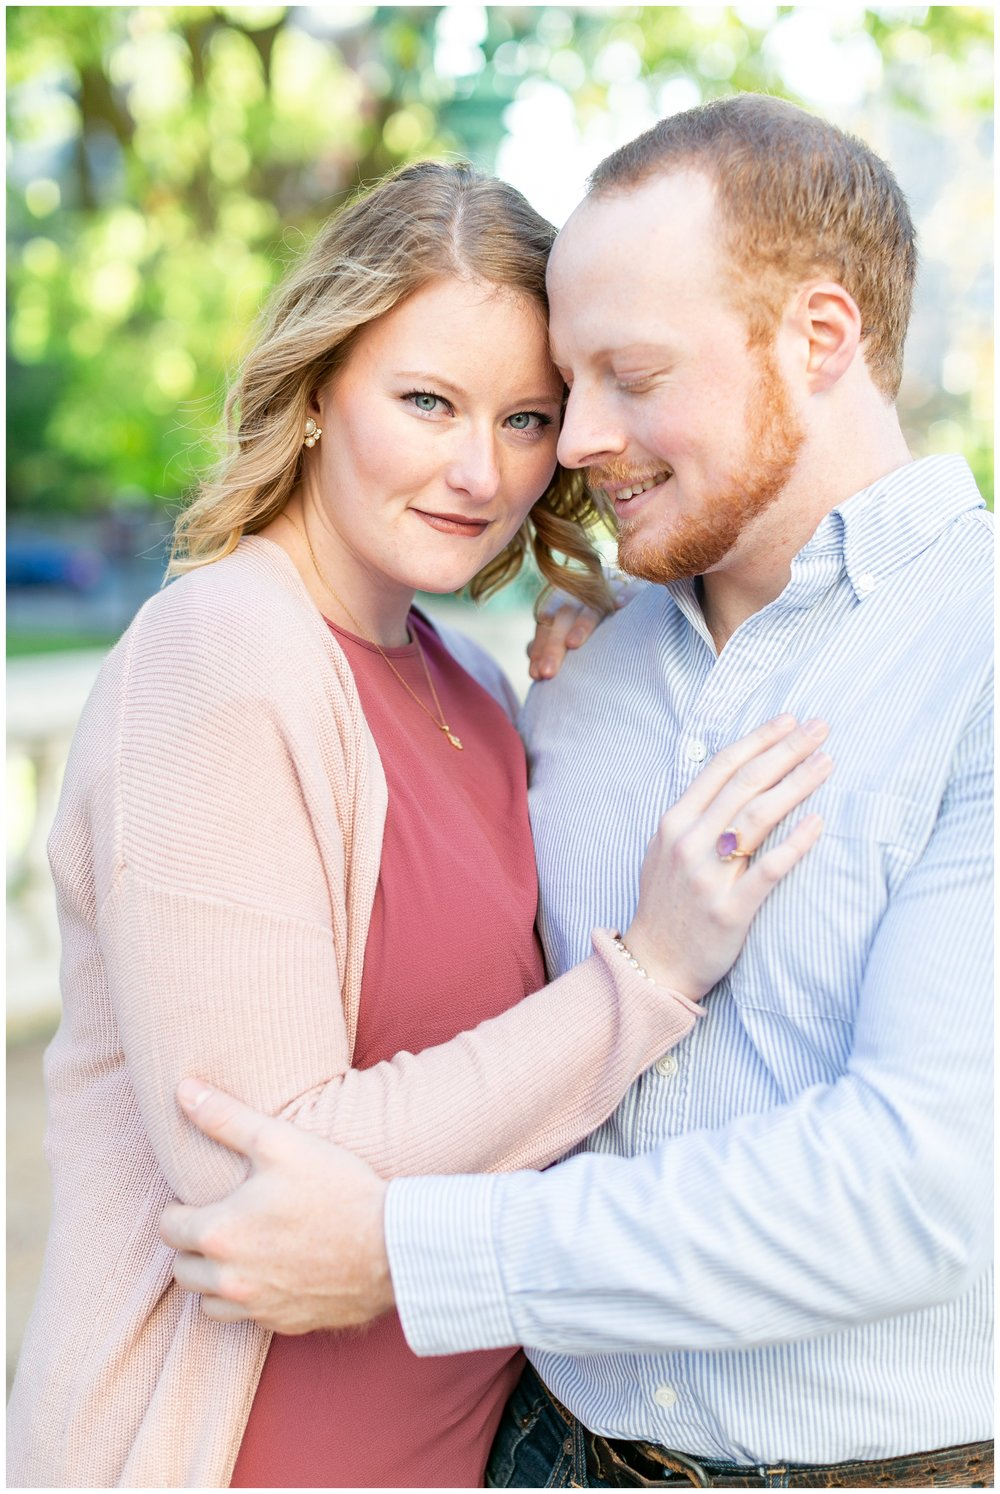 downtown_madison_engagement_session_caynay_photo_2016.jpg